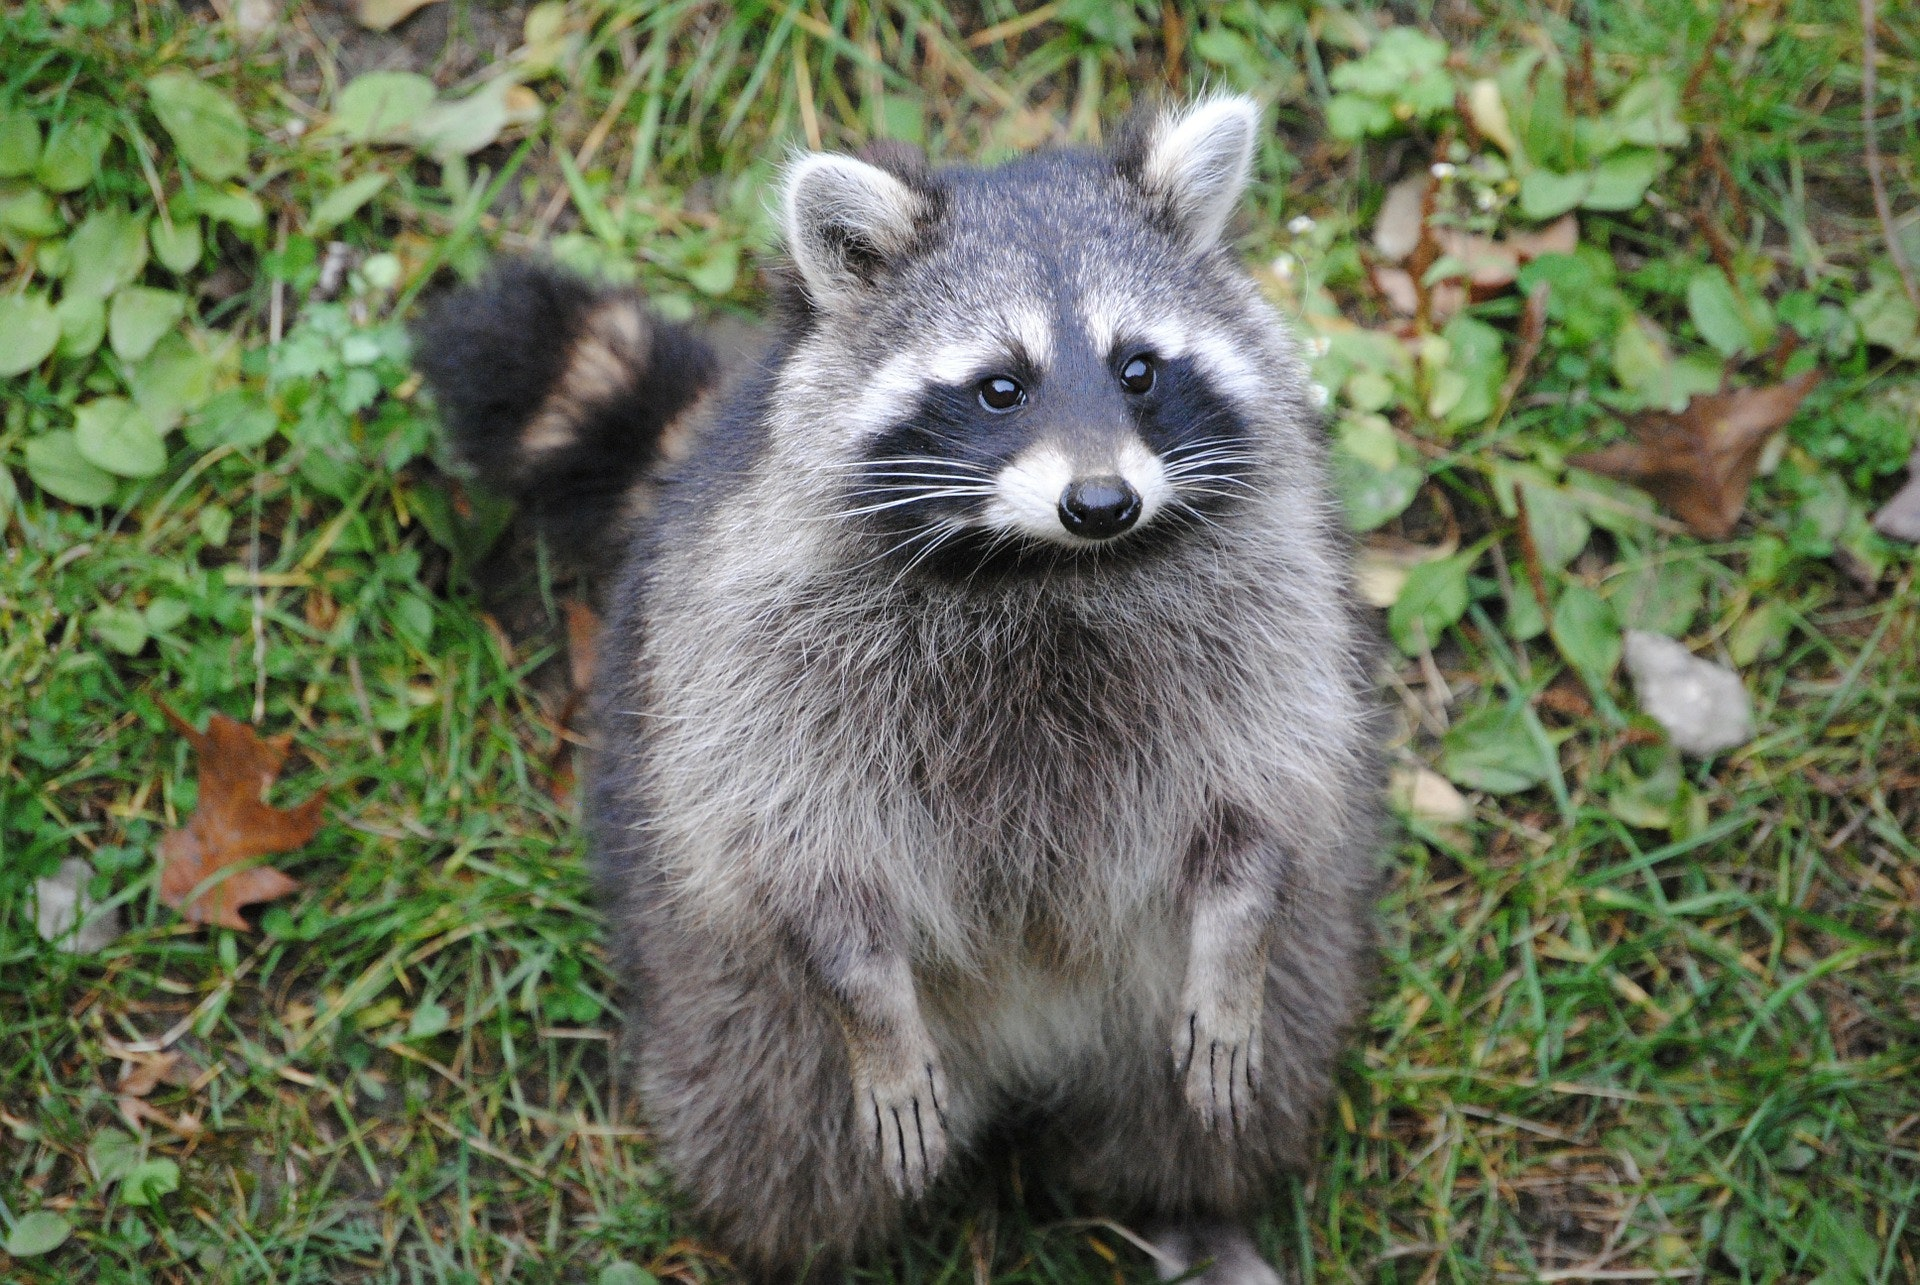 A plump and furry raccoon sits on its back legs looking towards the camera.  It has grey fur on its body, with black and white fur on its face.